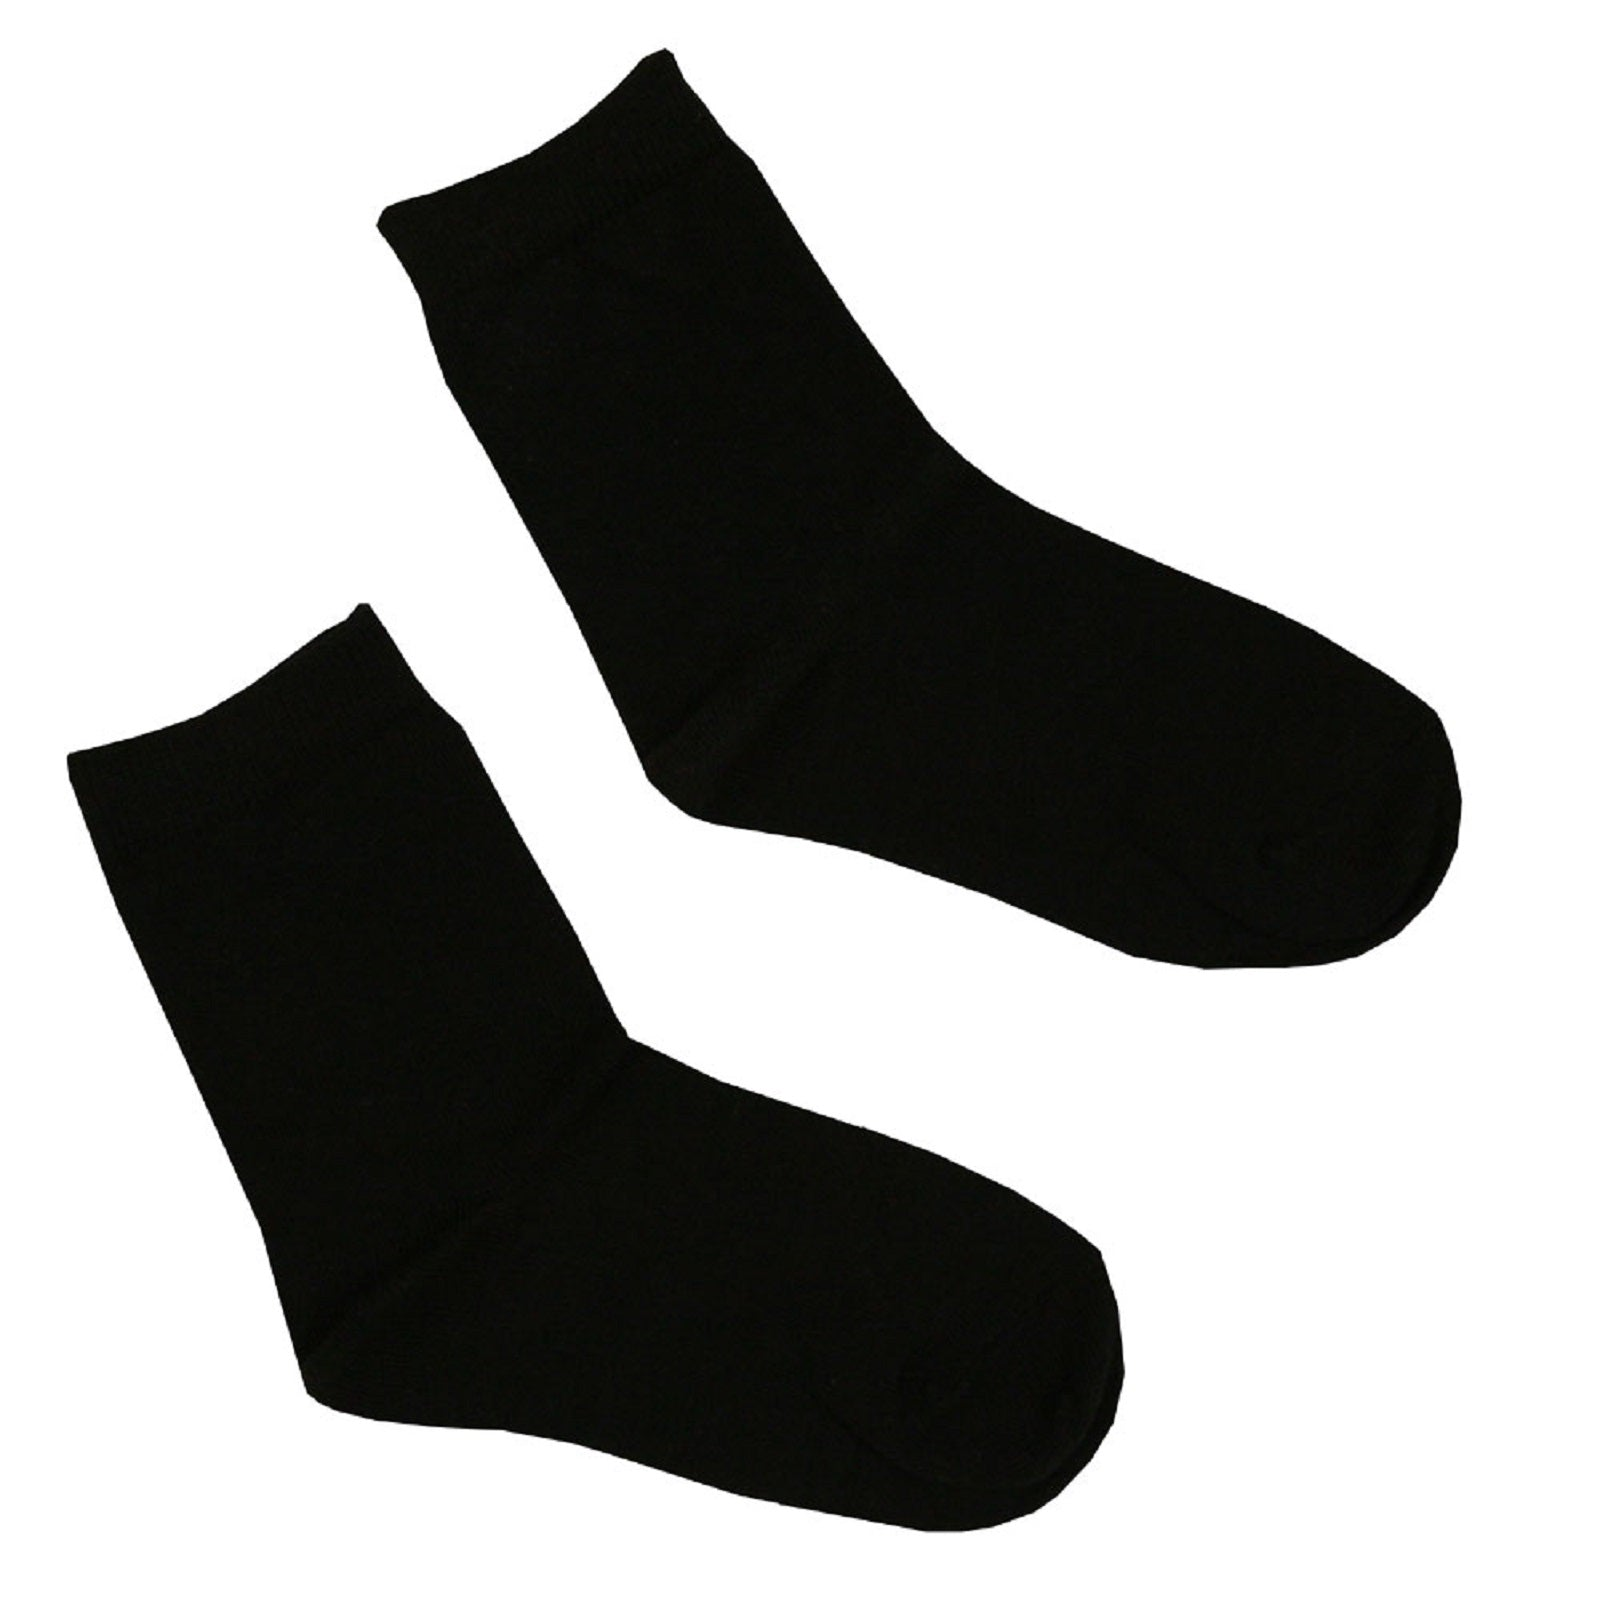 56913110d0f 2x 3x 6x Girls Ladies Knee High Cotton Socks Plain Children Kids School  Socks Kindermode